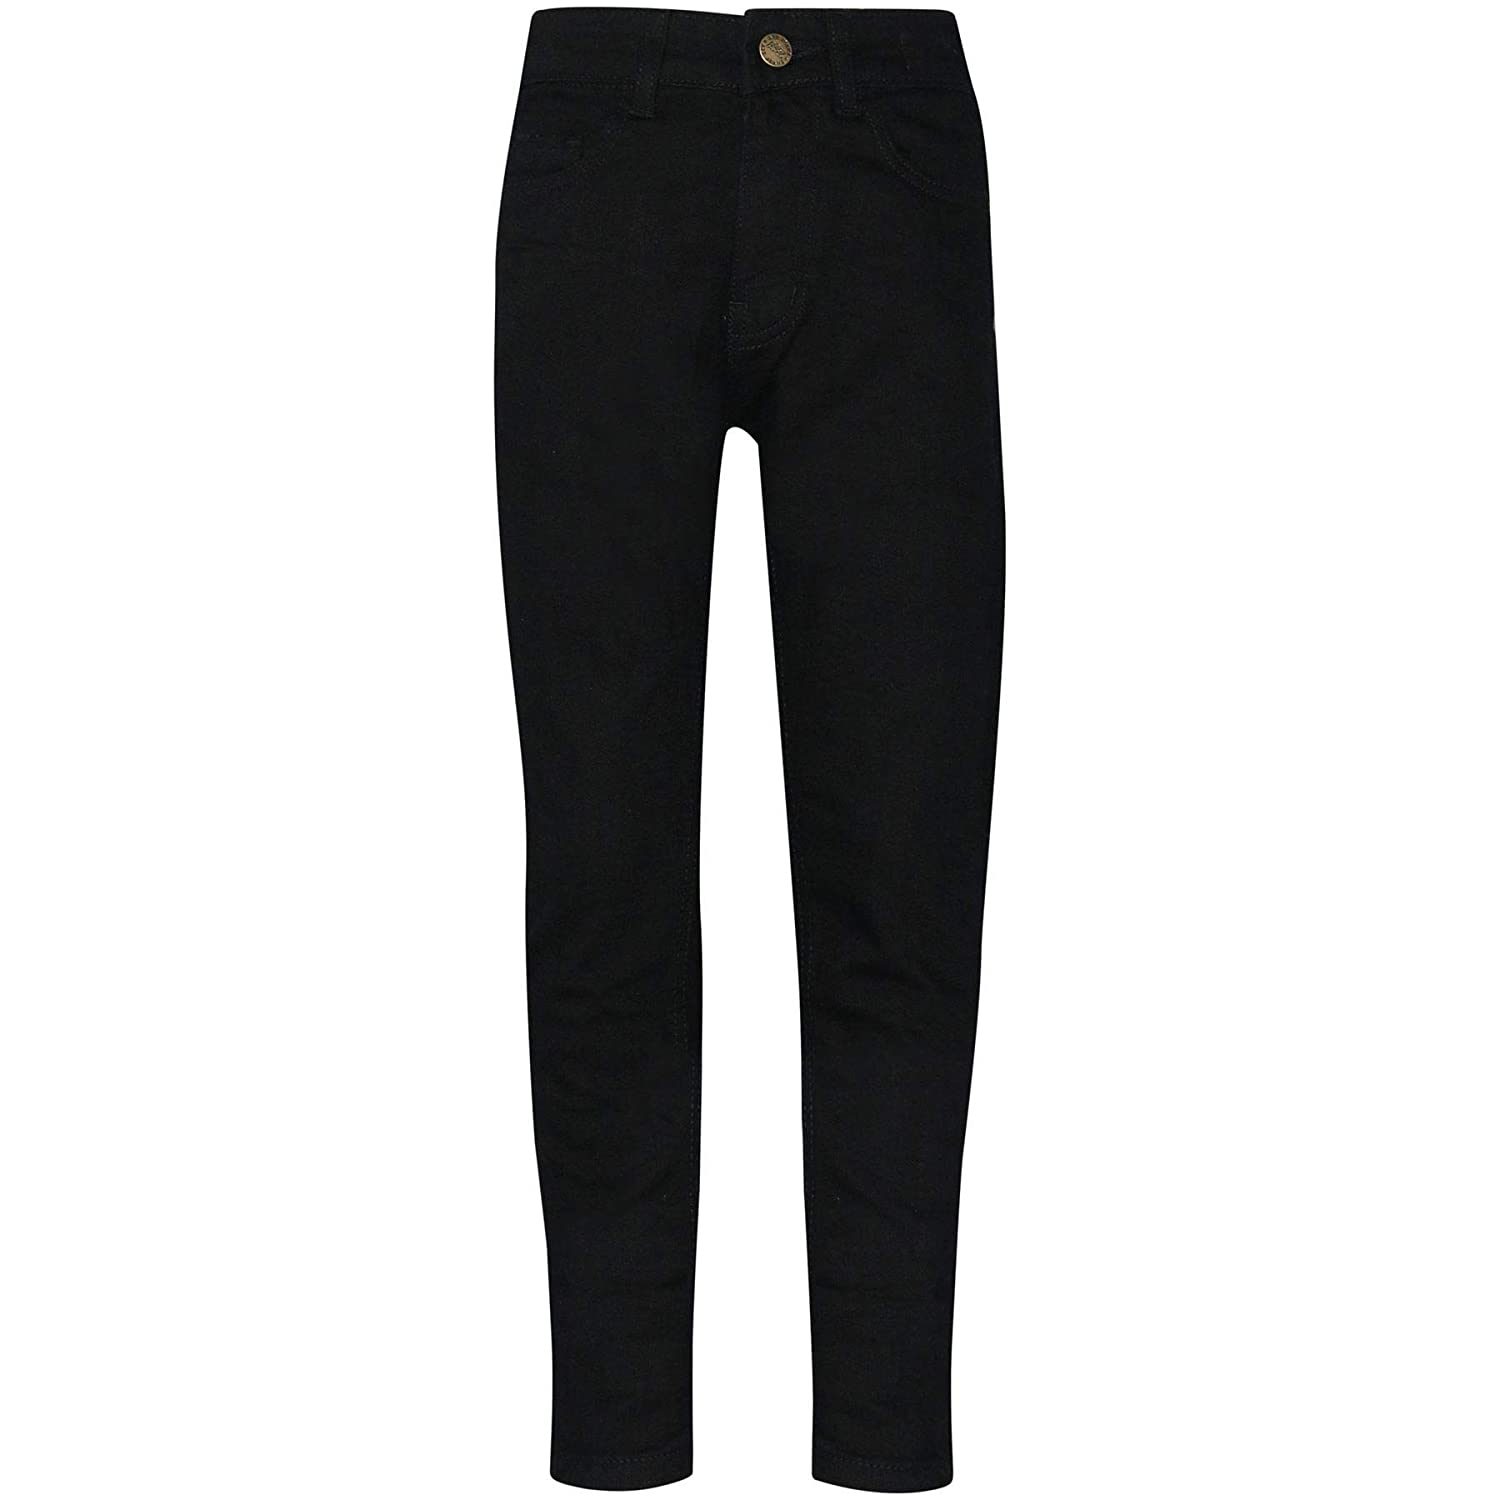 A2Z 4 Kids Kids Boys Skinny Jeans Designer's Jet Black Denim Stretchy Pants Fashion Fit Trousers New Age 5 6 7 8 9 10 11 12 13 Years